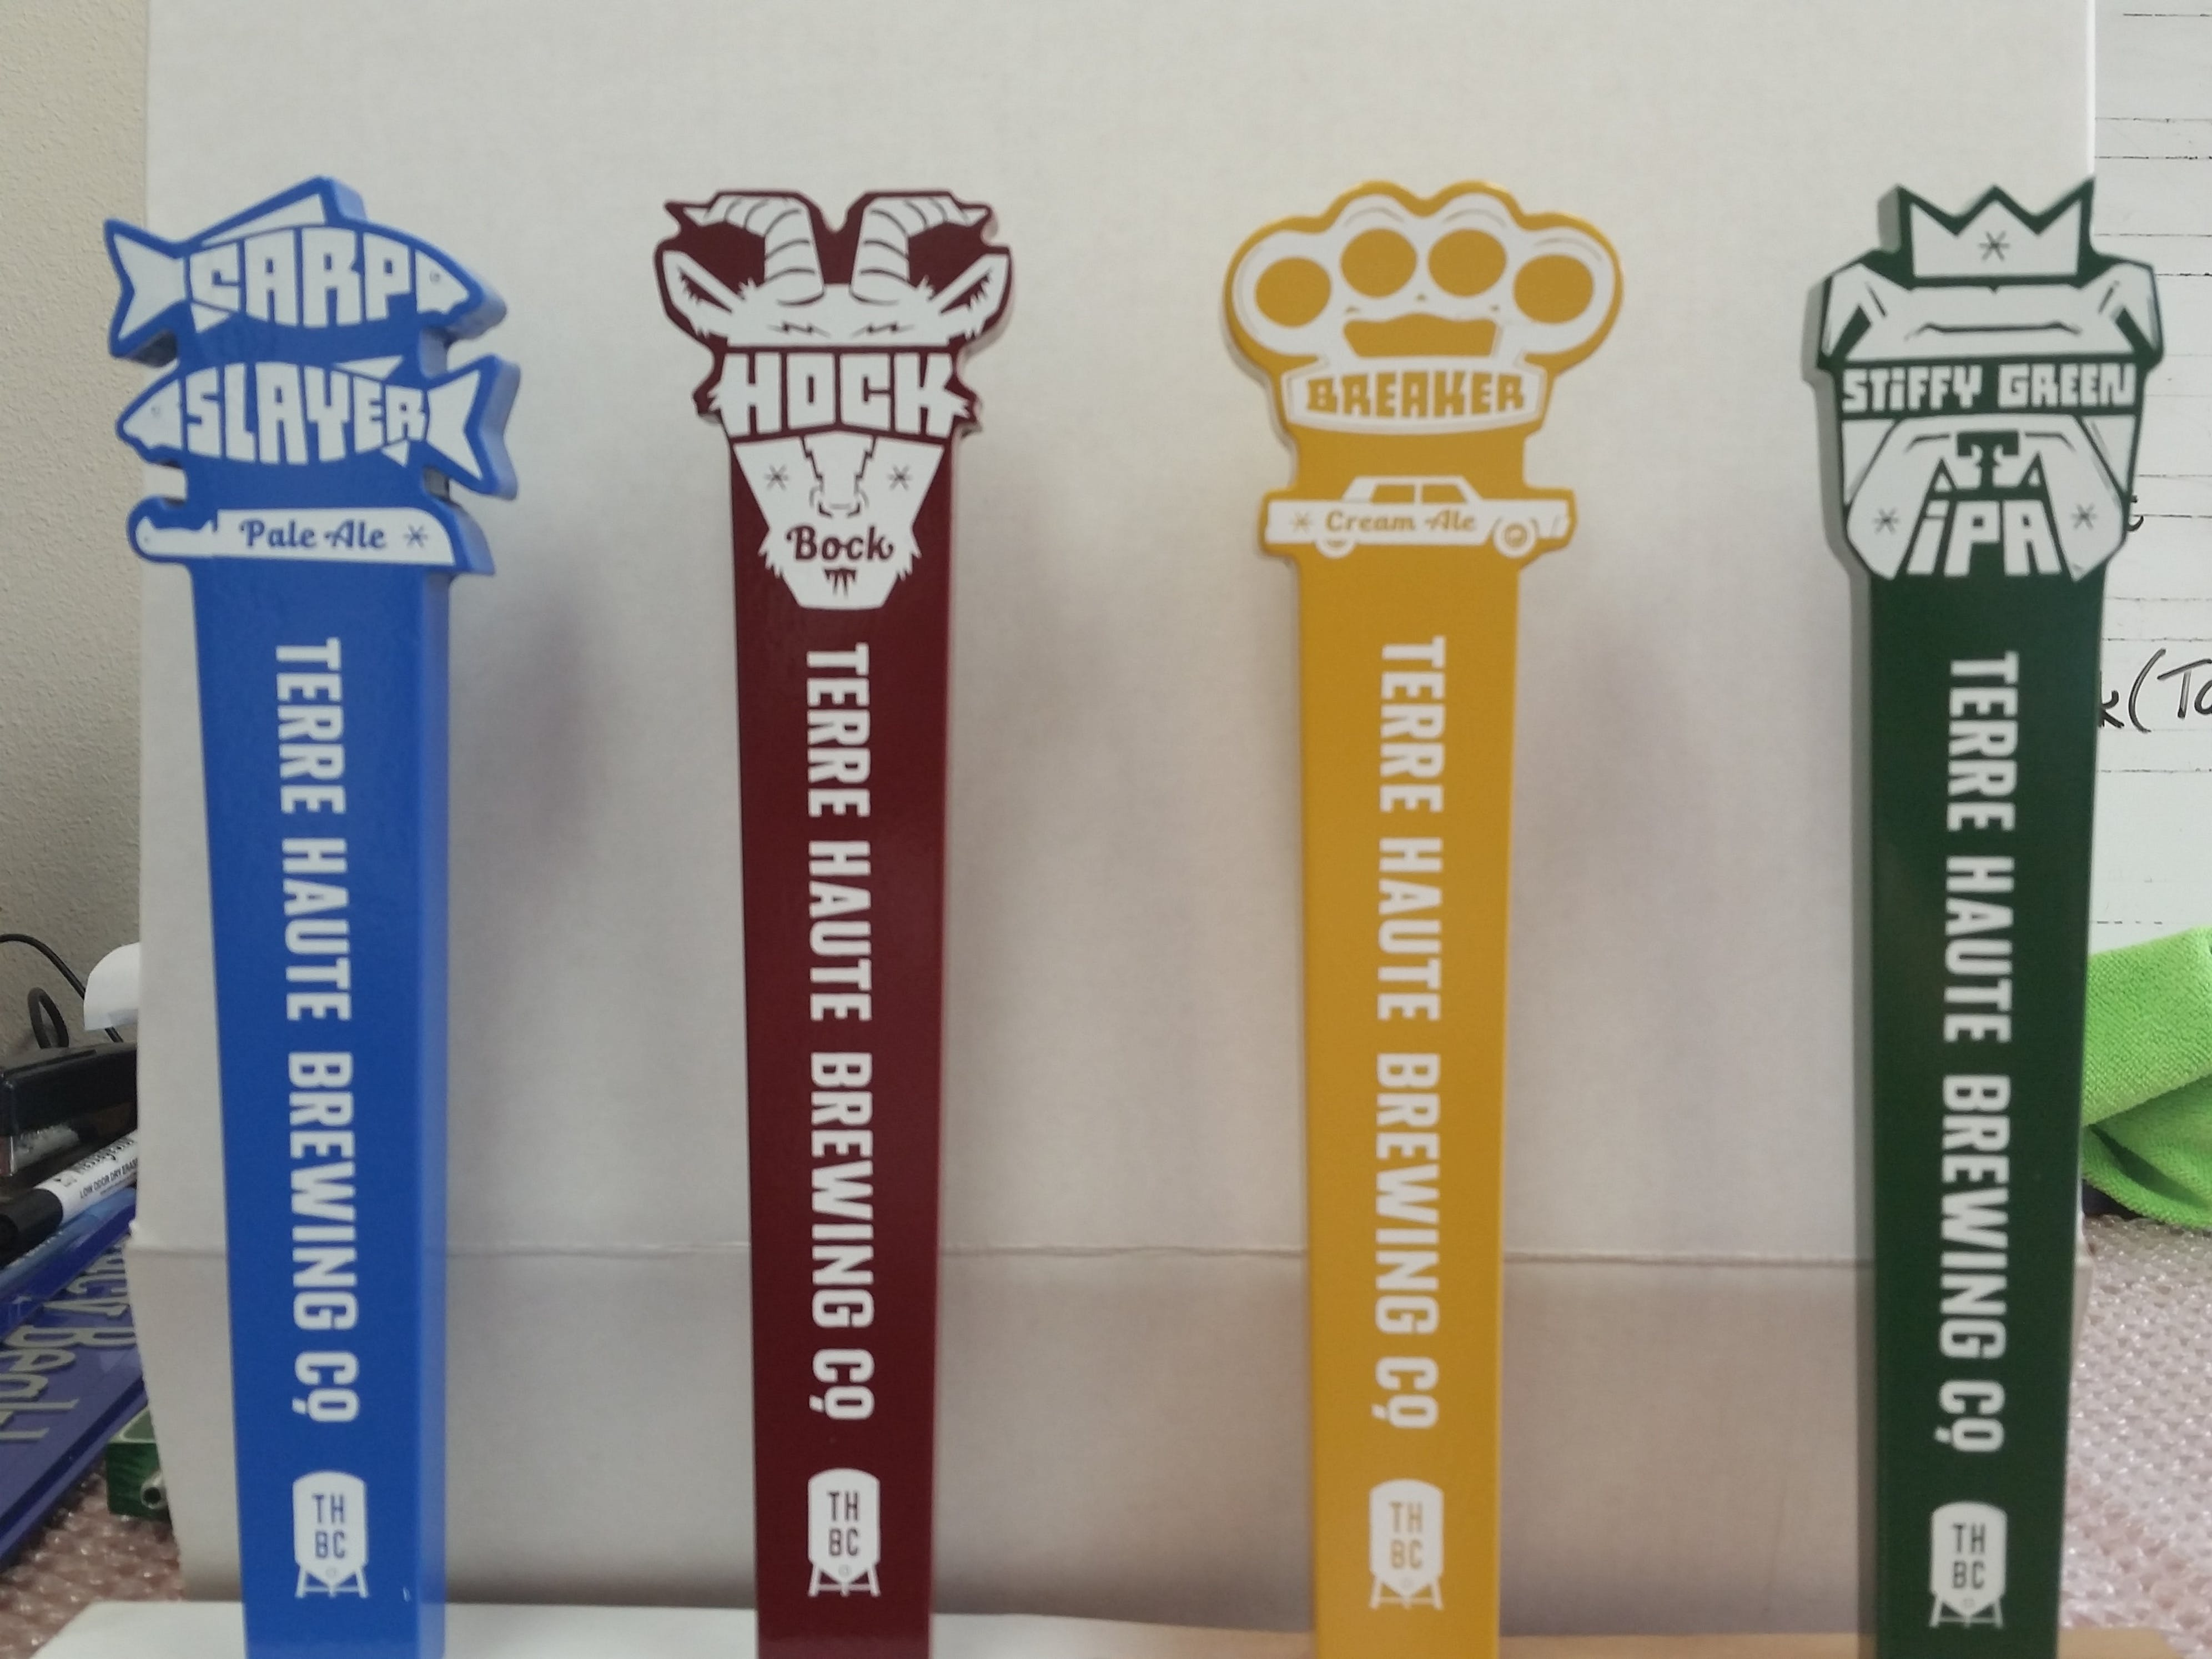 Wood (Enamel Coated) with Screen Printed Logo Tap handle sold by Brewlicious Beer